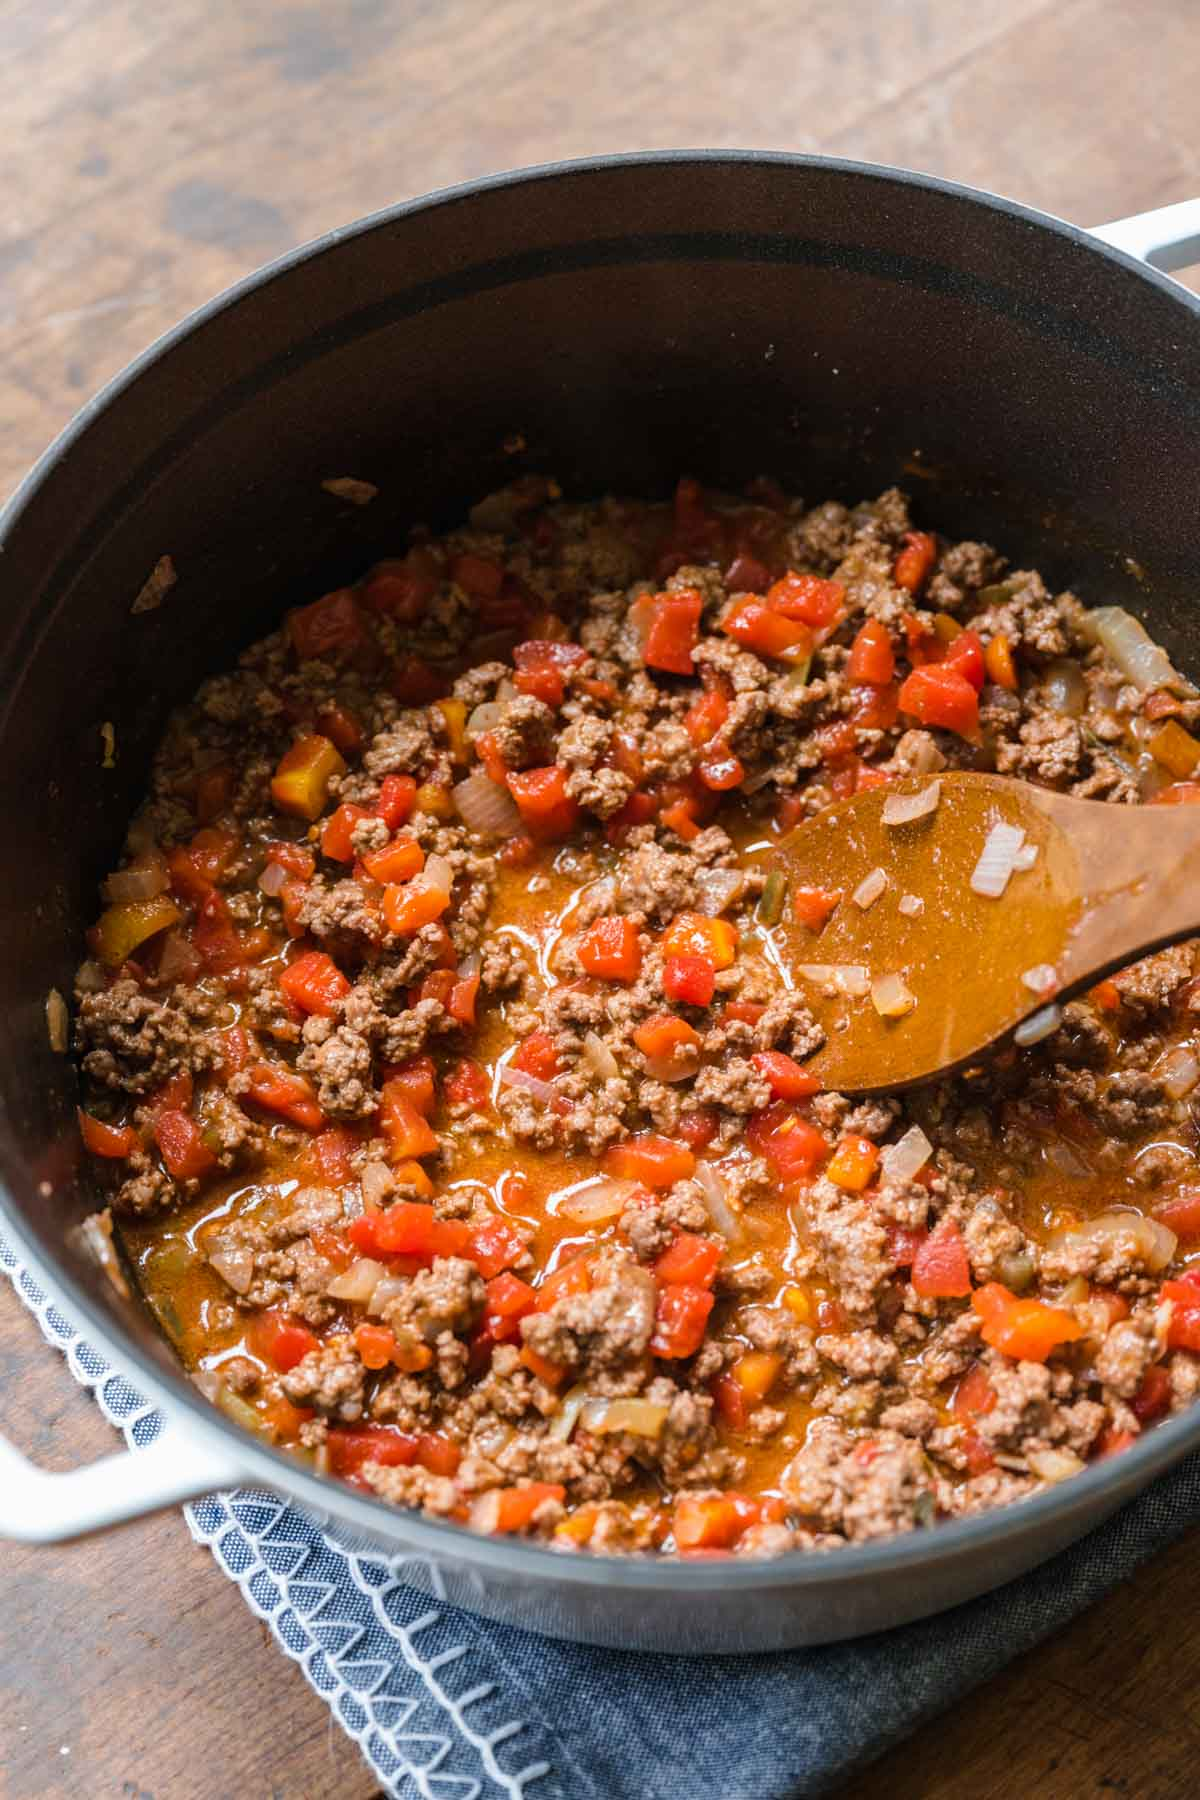 Ground beef with onions and tomatoes for Cheeseburger Pasta